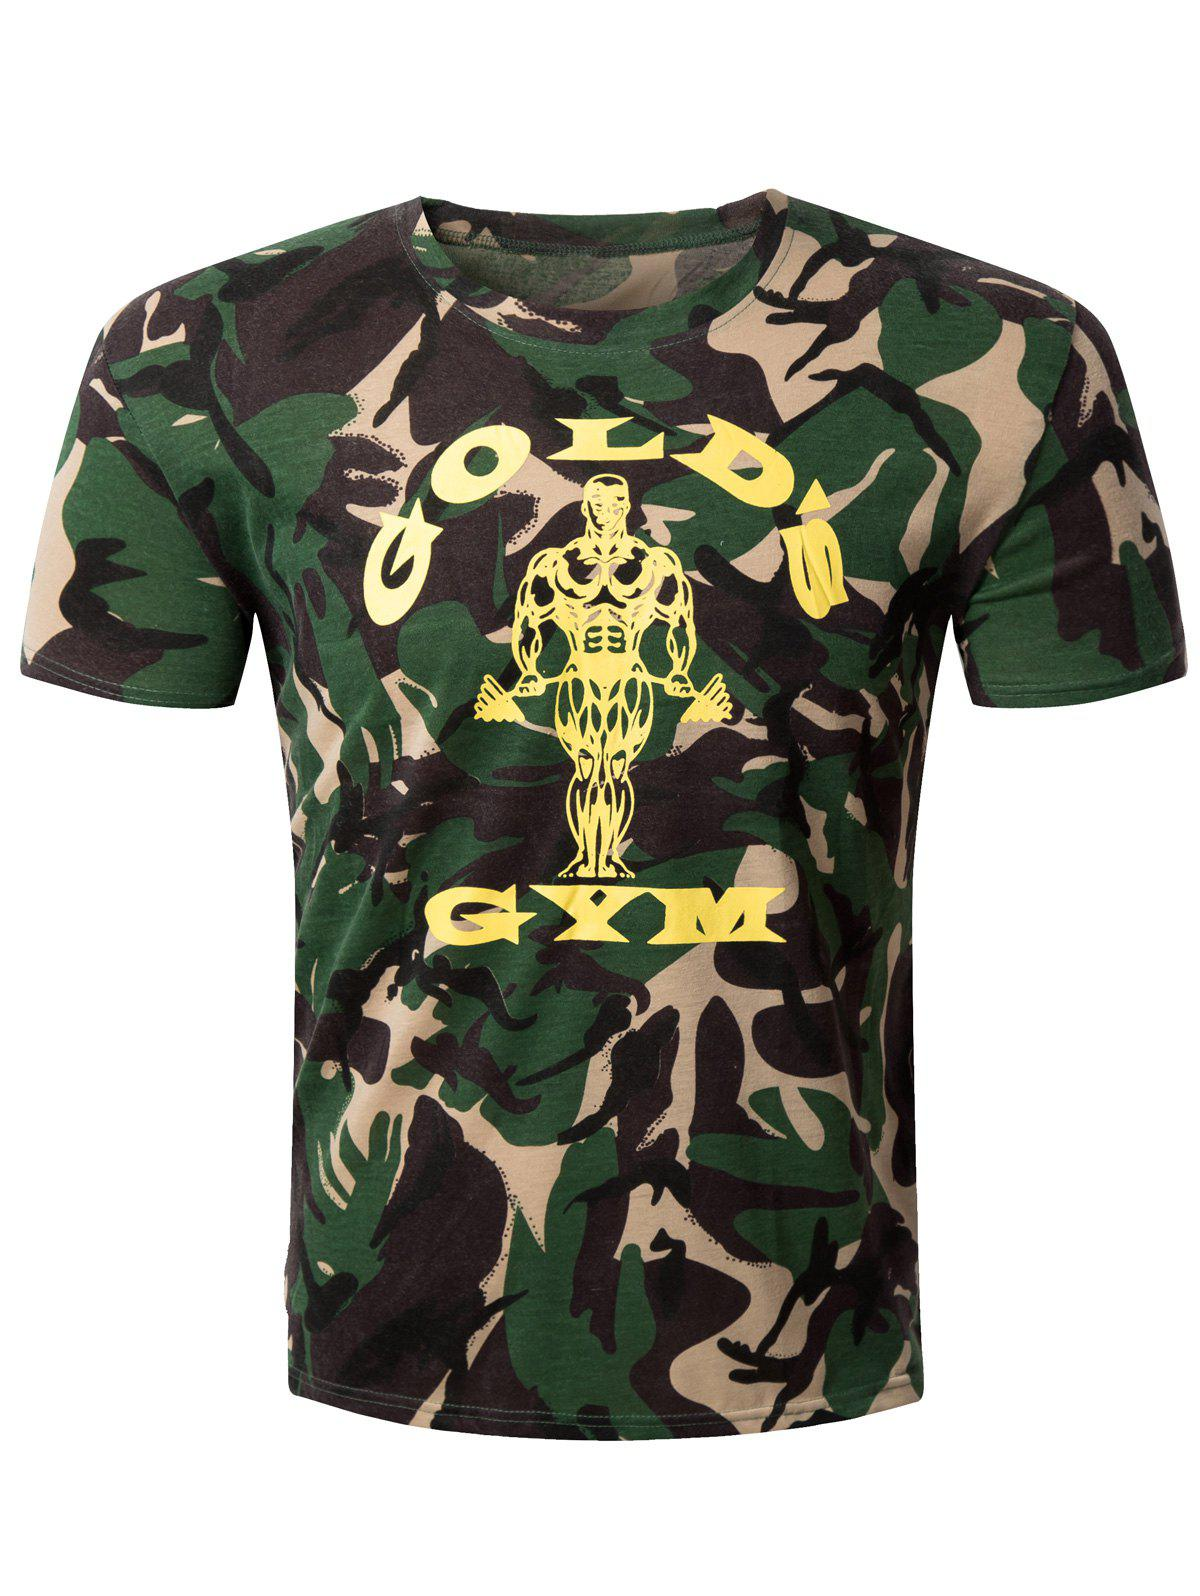 Casual Camo Letter Printed Round Collar Men's T-Shirt - CAMOUFLAGE L